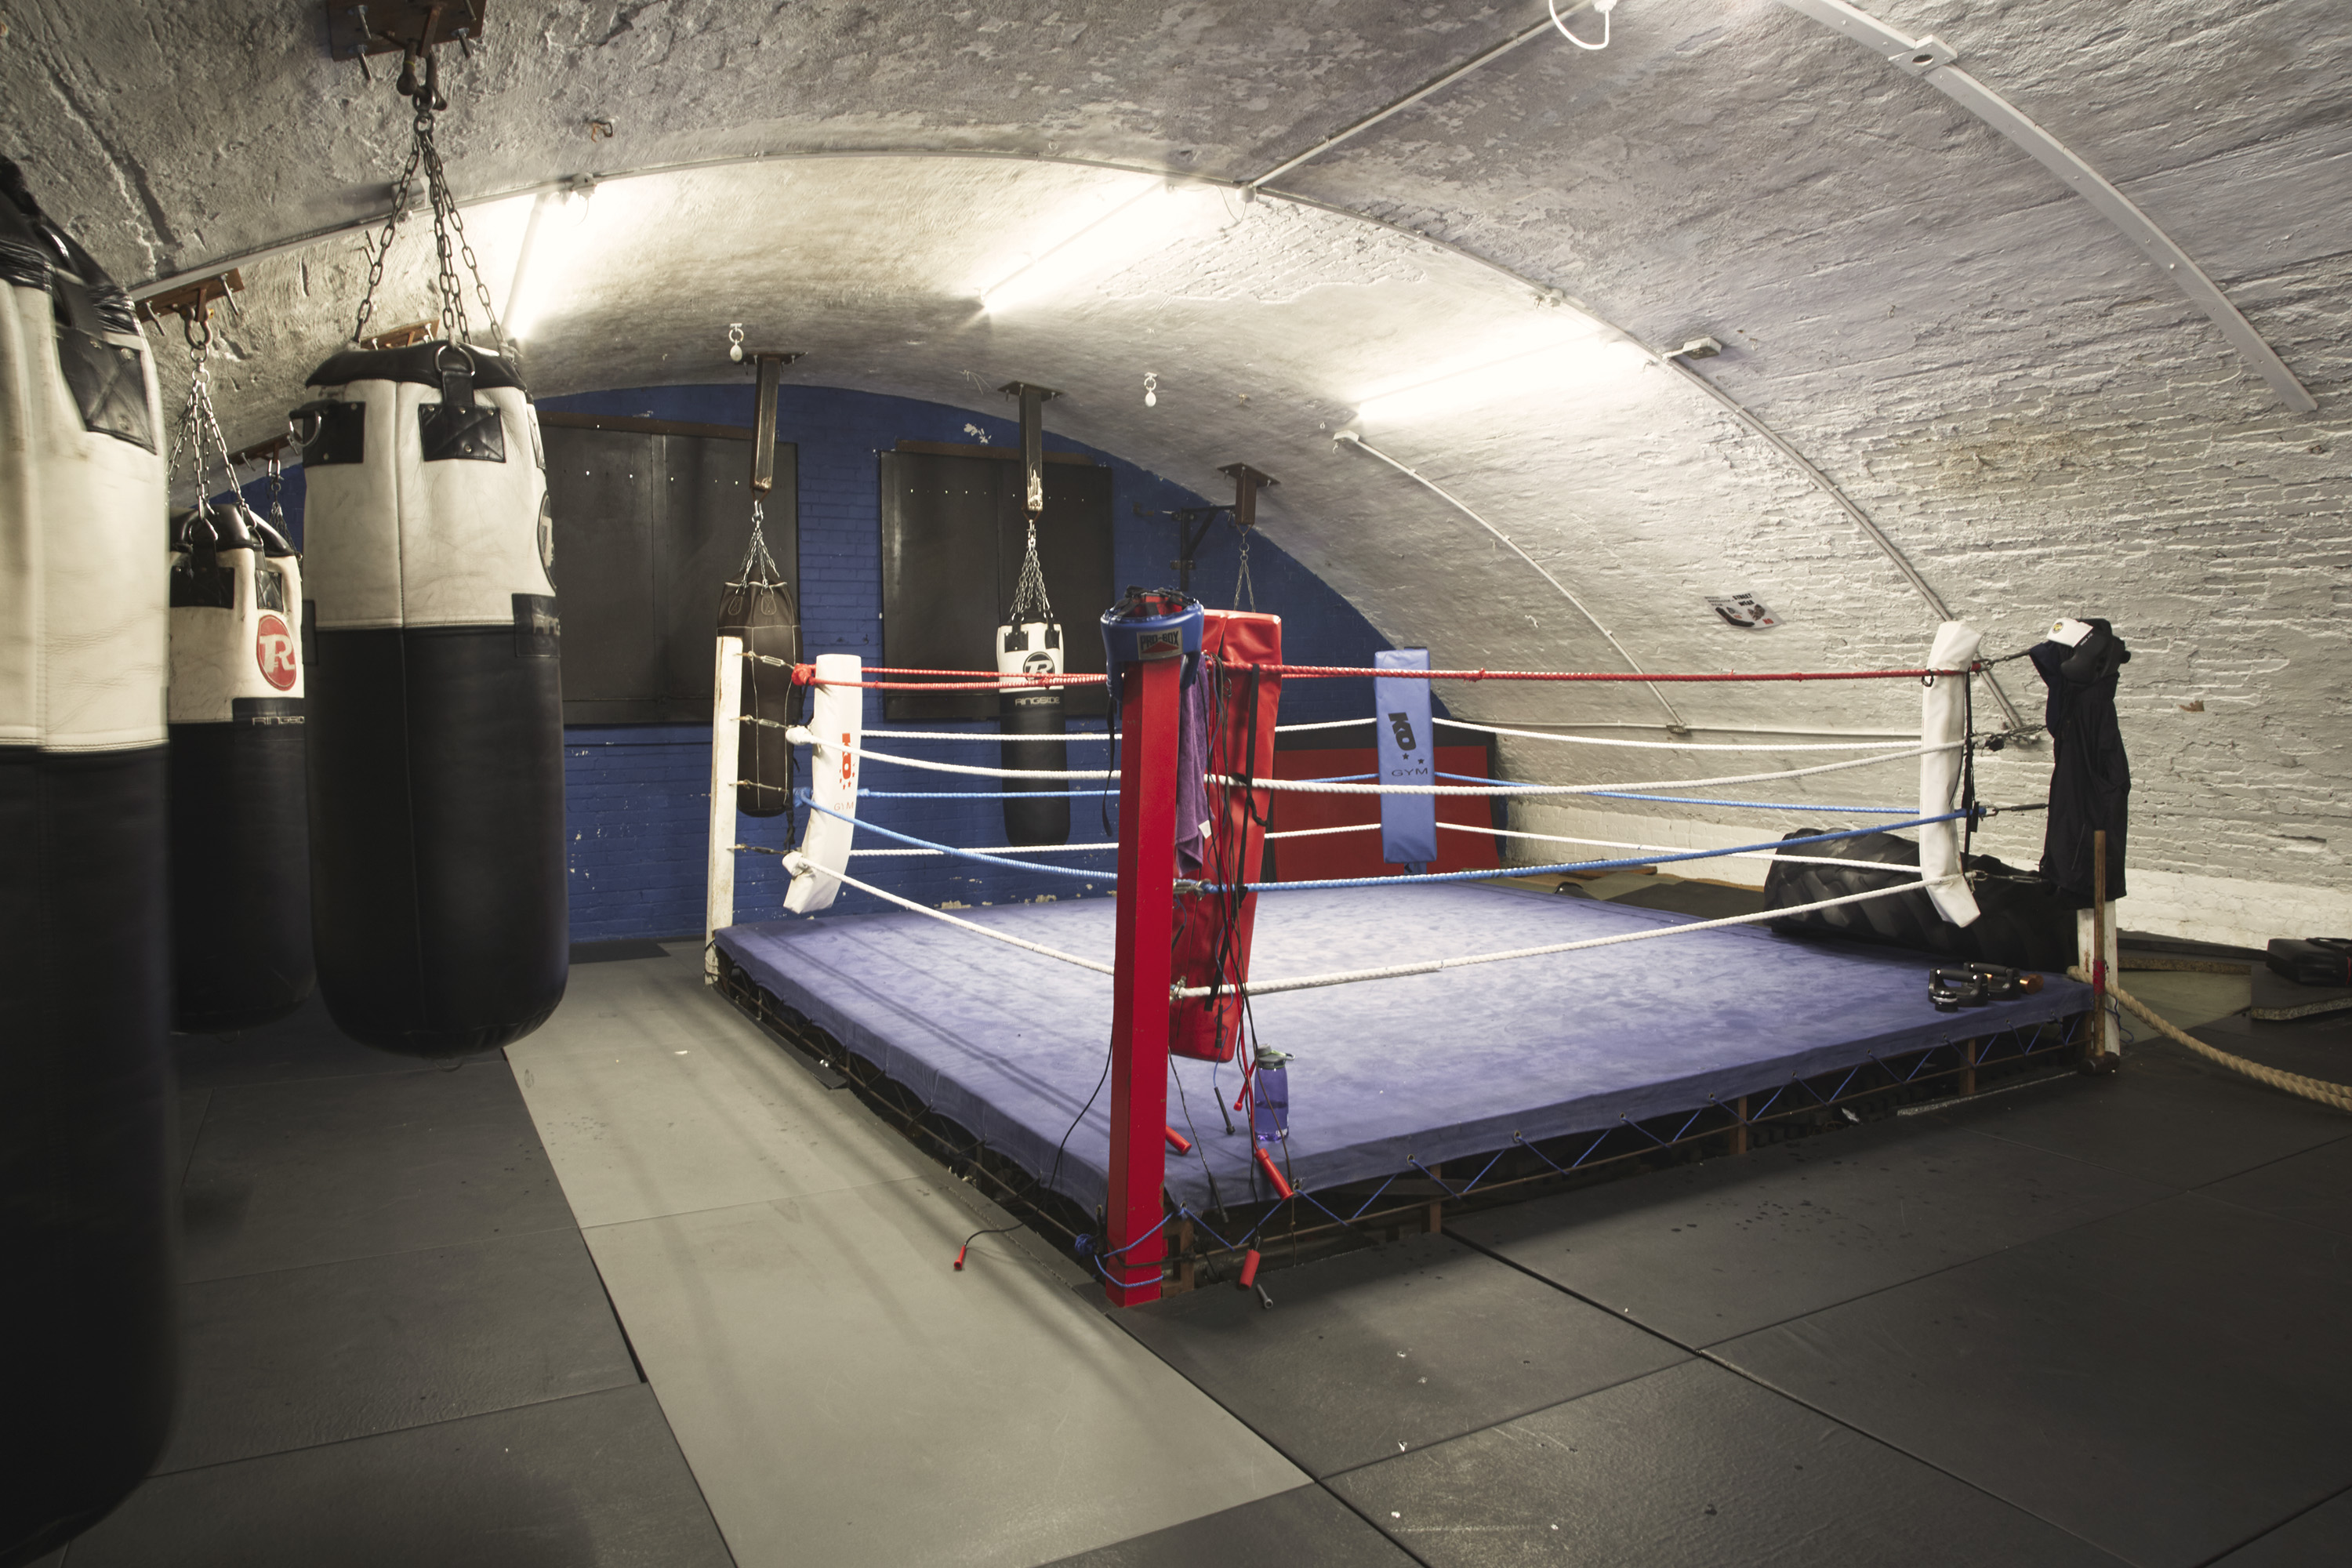 Ko gym combat academy muay thai kick boxing london